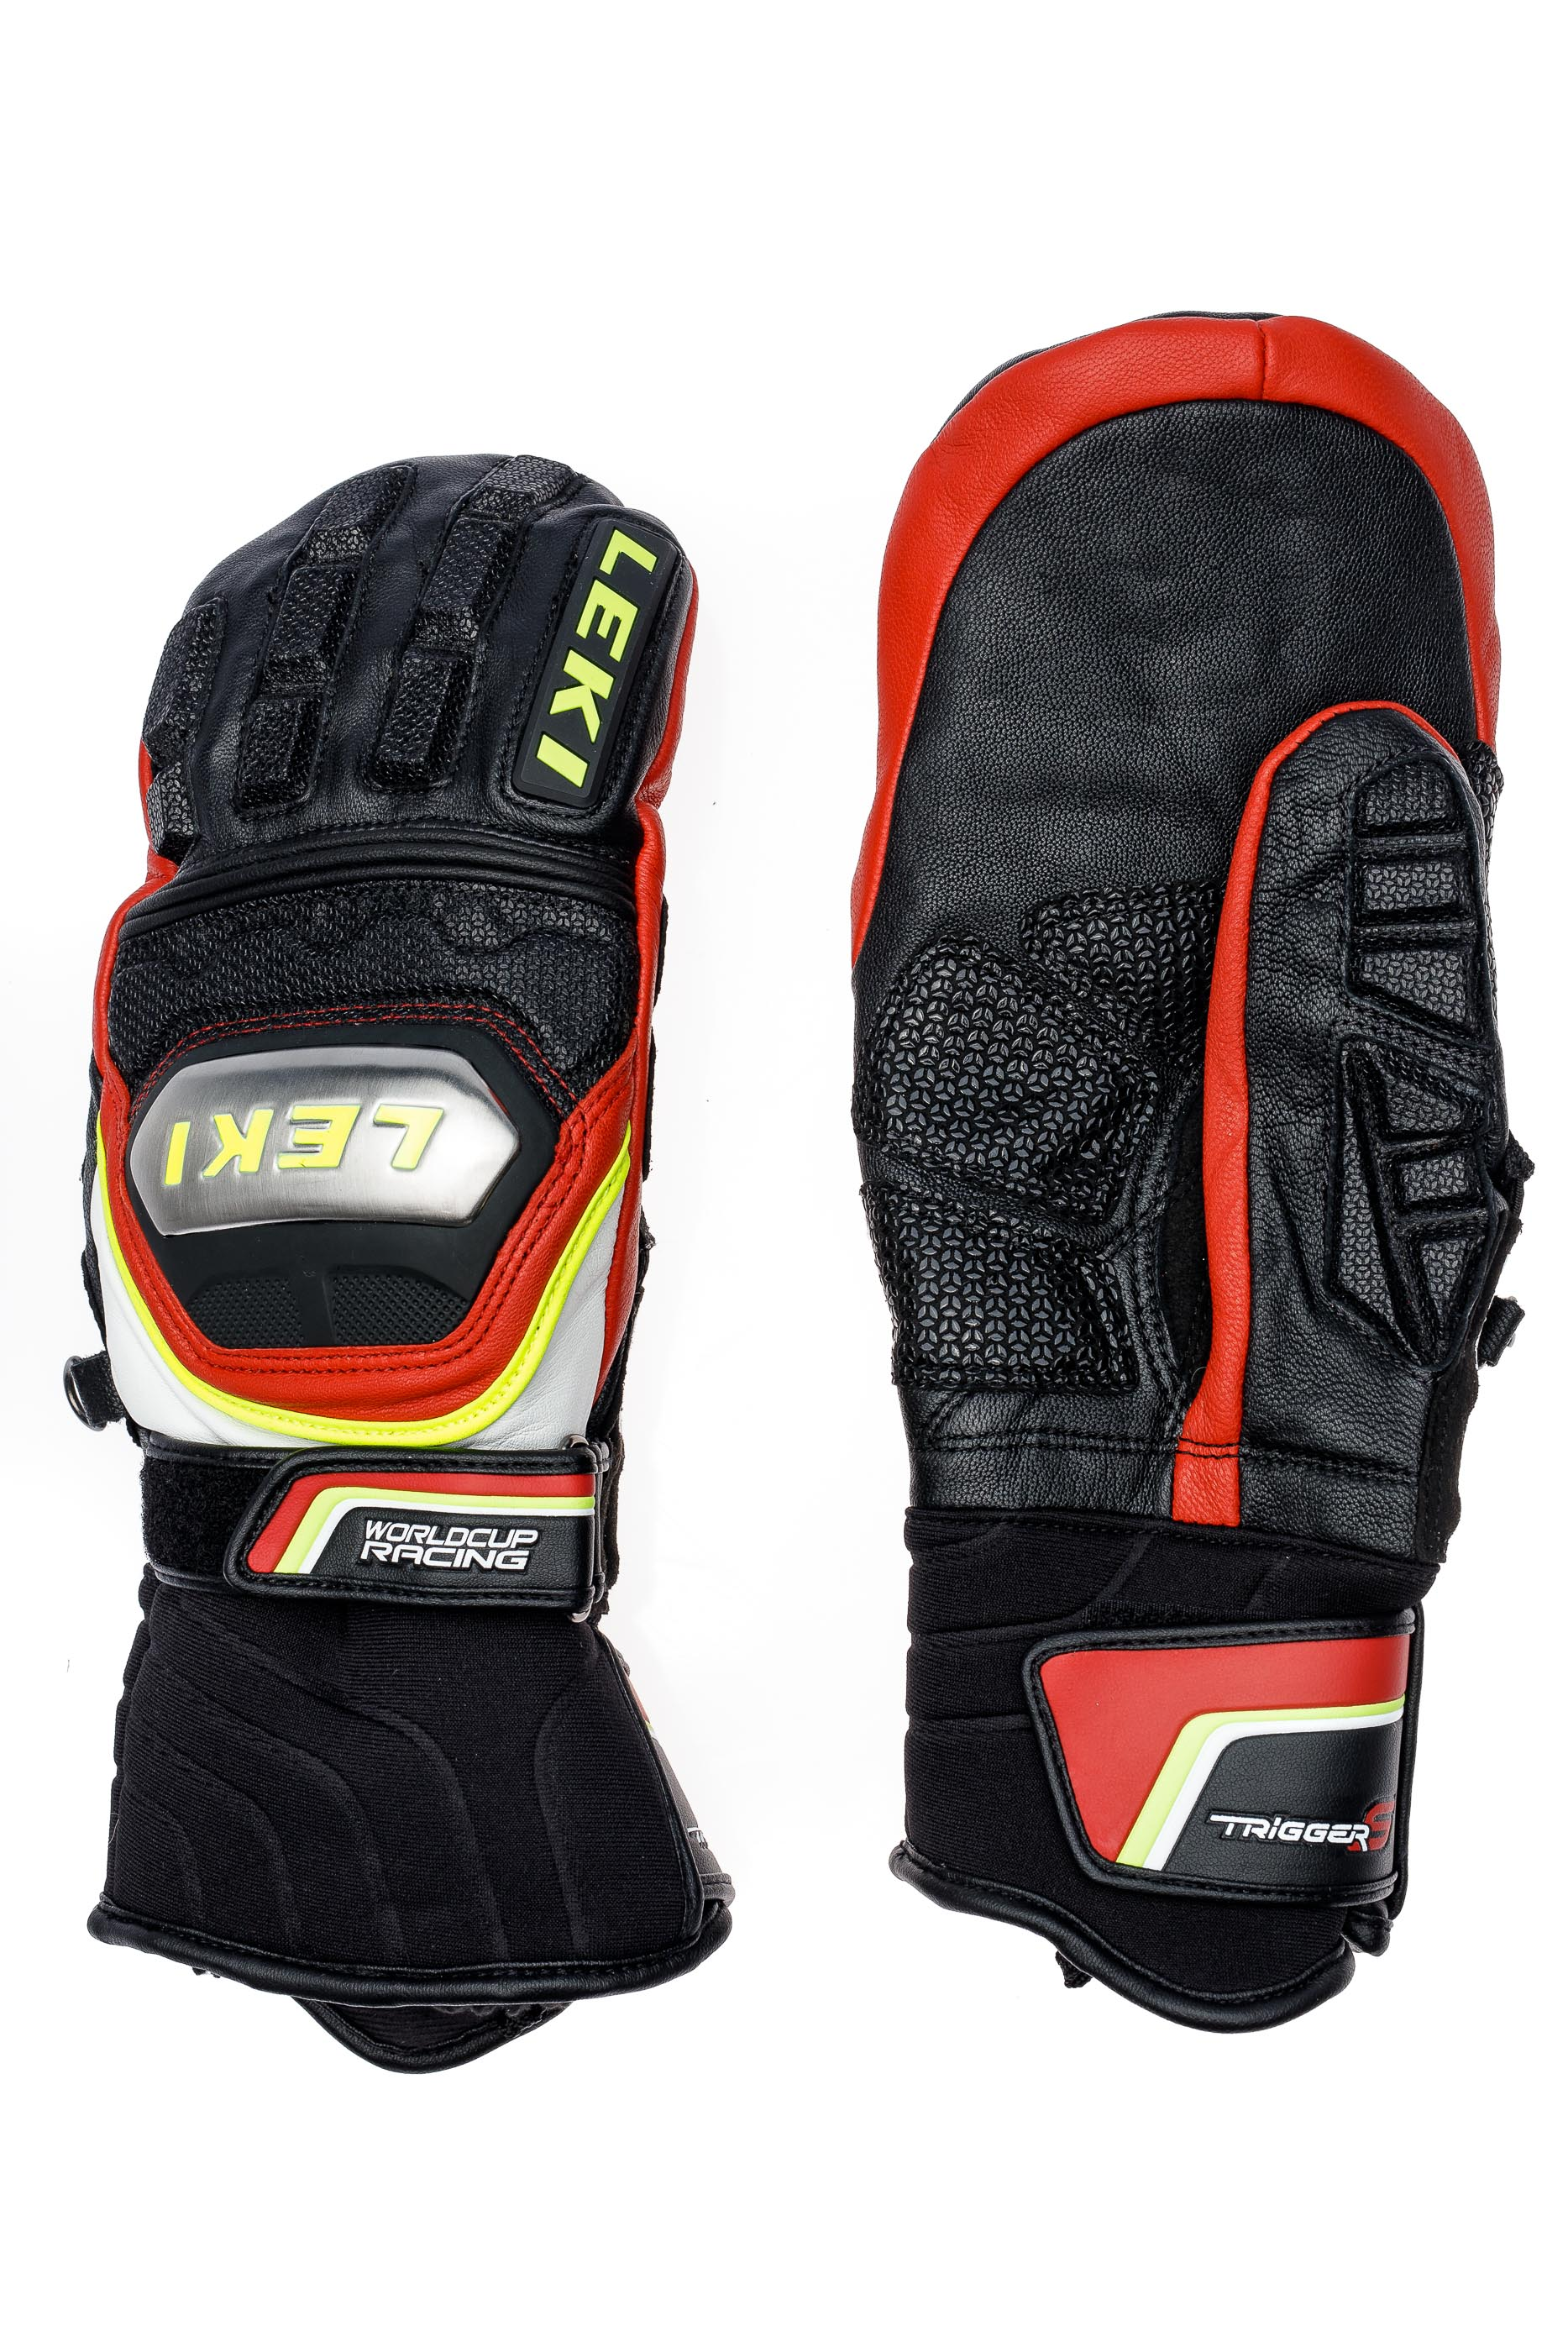 Варежки мужские Leki Worldcup Race TI S Mitten Speed System Black/Red/White/Yellow - Фото 2 большая